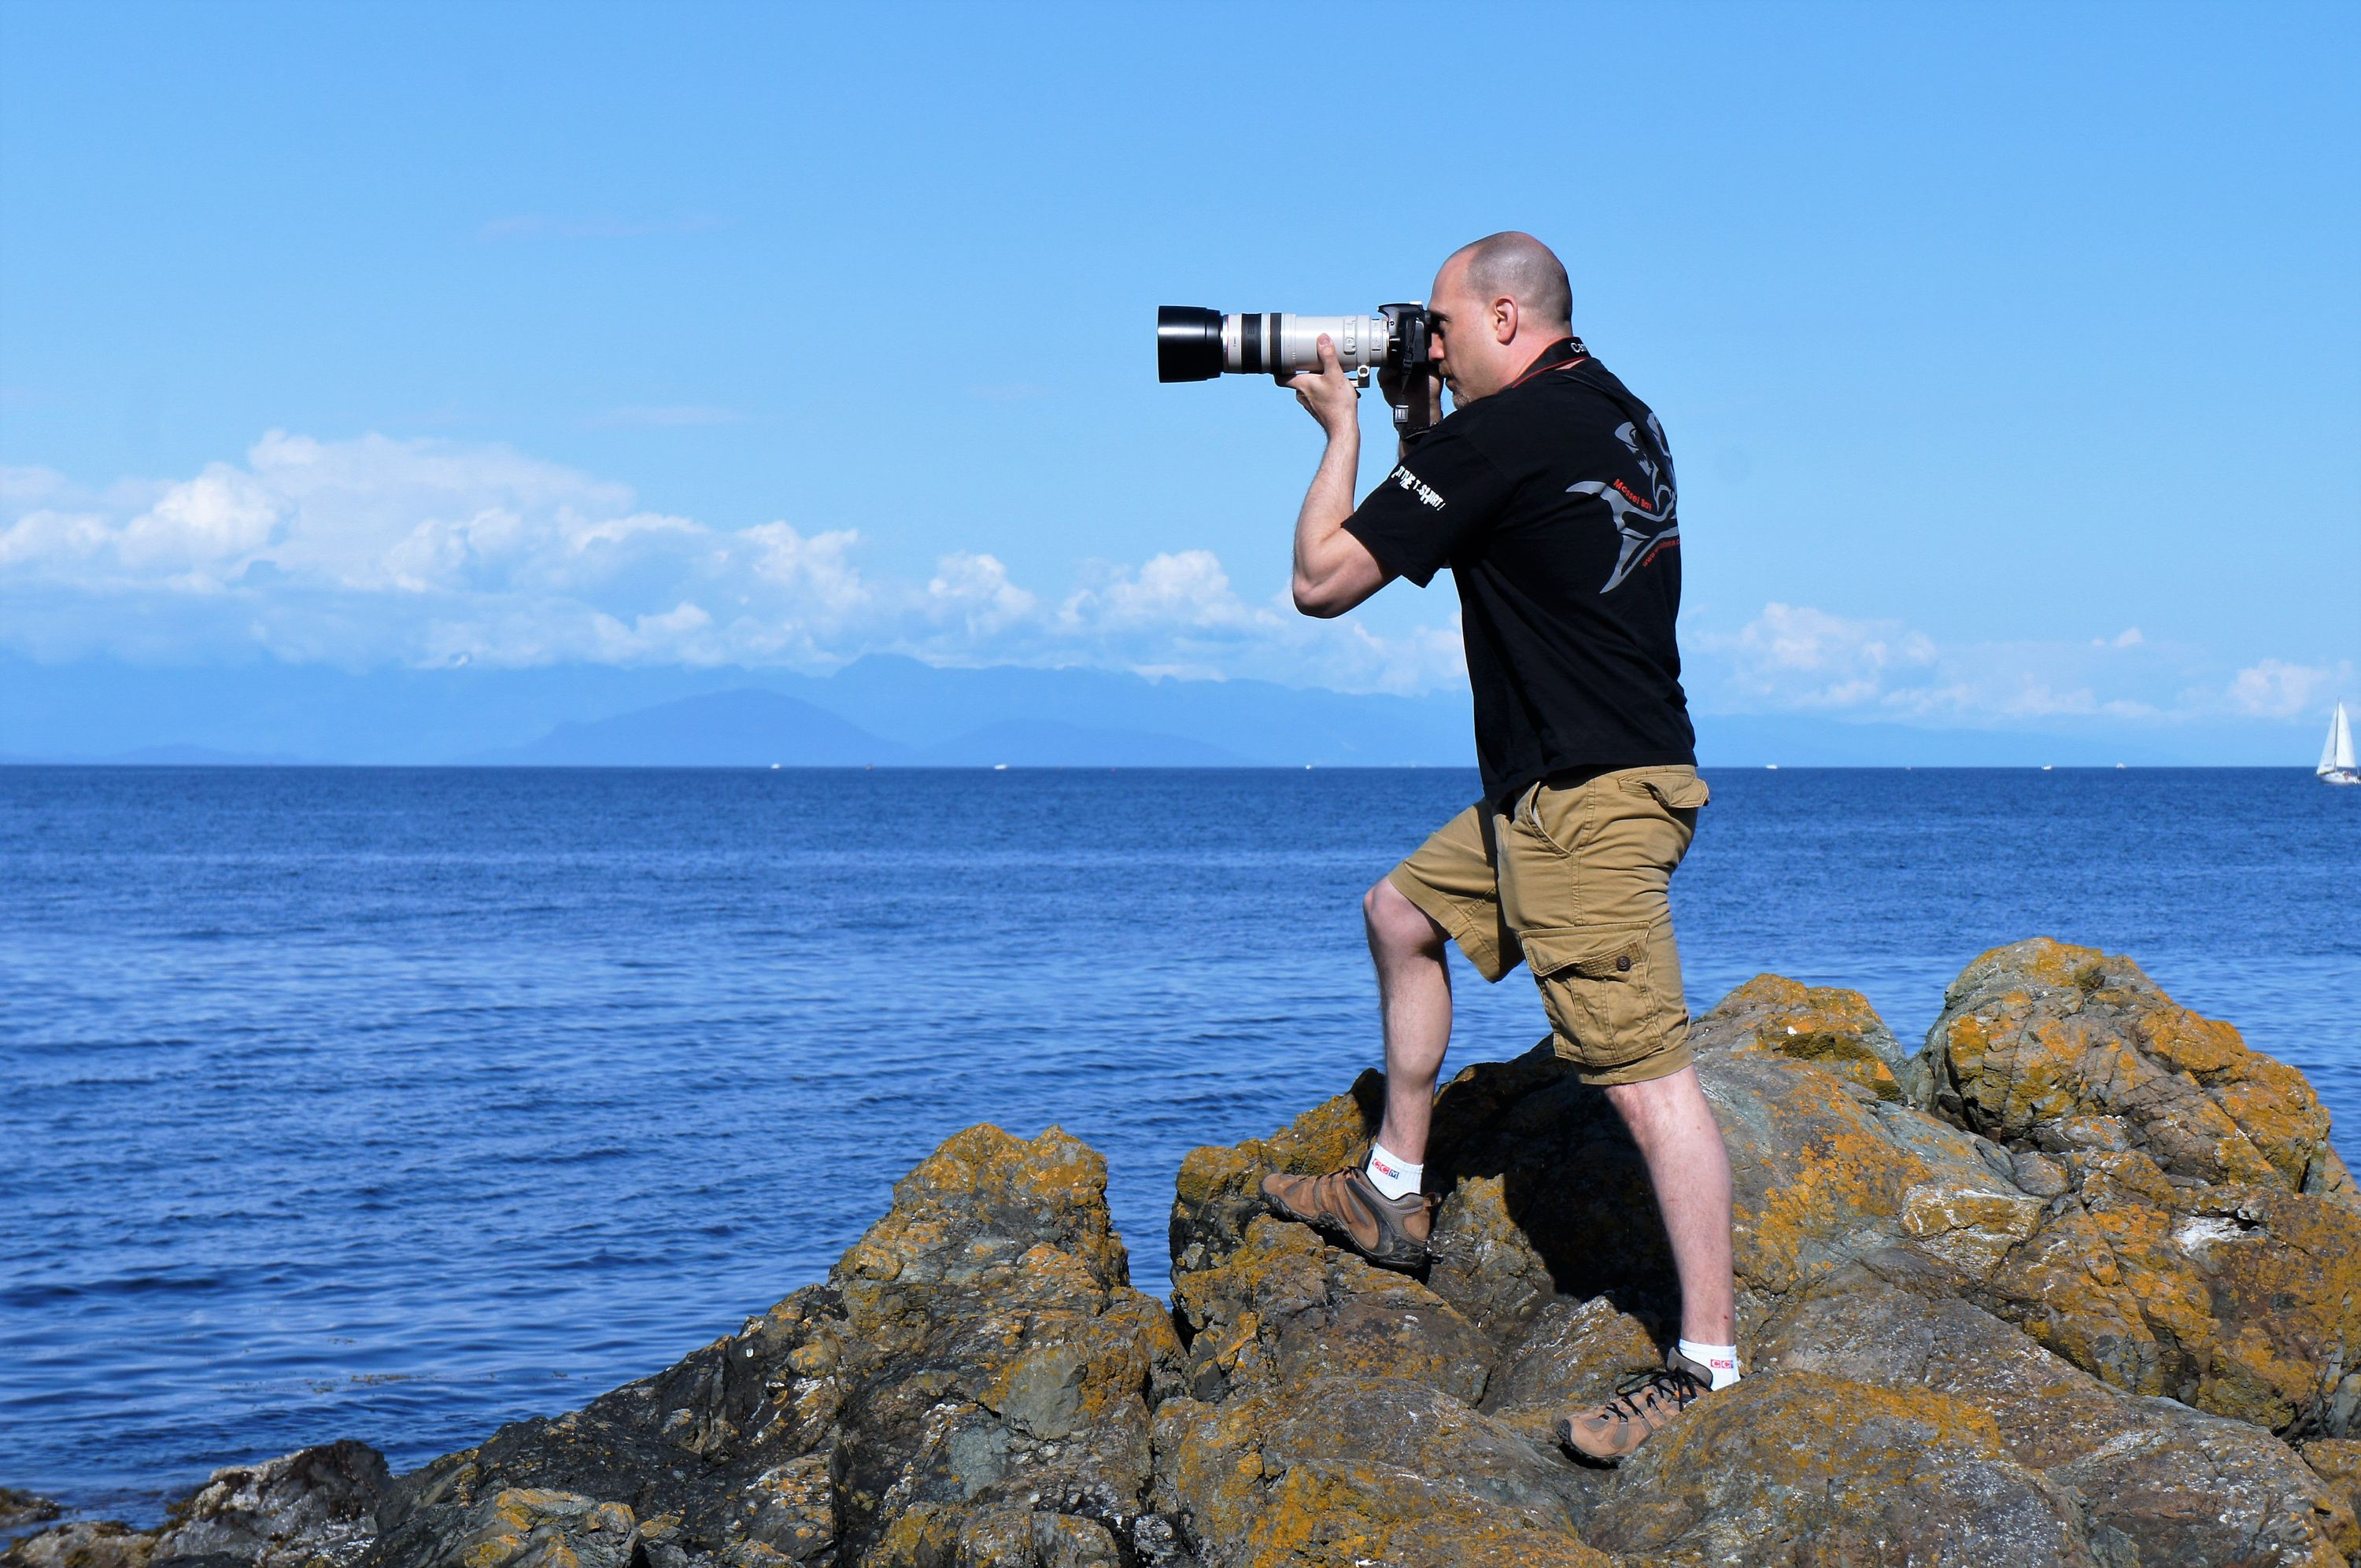 <div class='title'>           Robert VandenDool, Wildlife Artist and Photographer of Artistically Wild at Neck Point, Nanaimo, British Columbia         </div>                 <div class='description'>           Robert VandenDool, Wildlife Artist and Photographer of Artistically Wild at Neck Point, Nanaimo, British Columbia         </div>